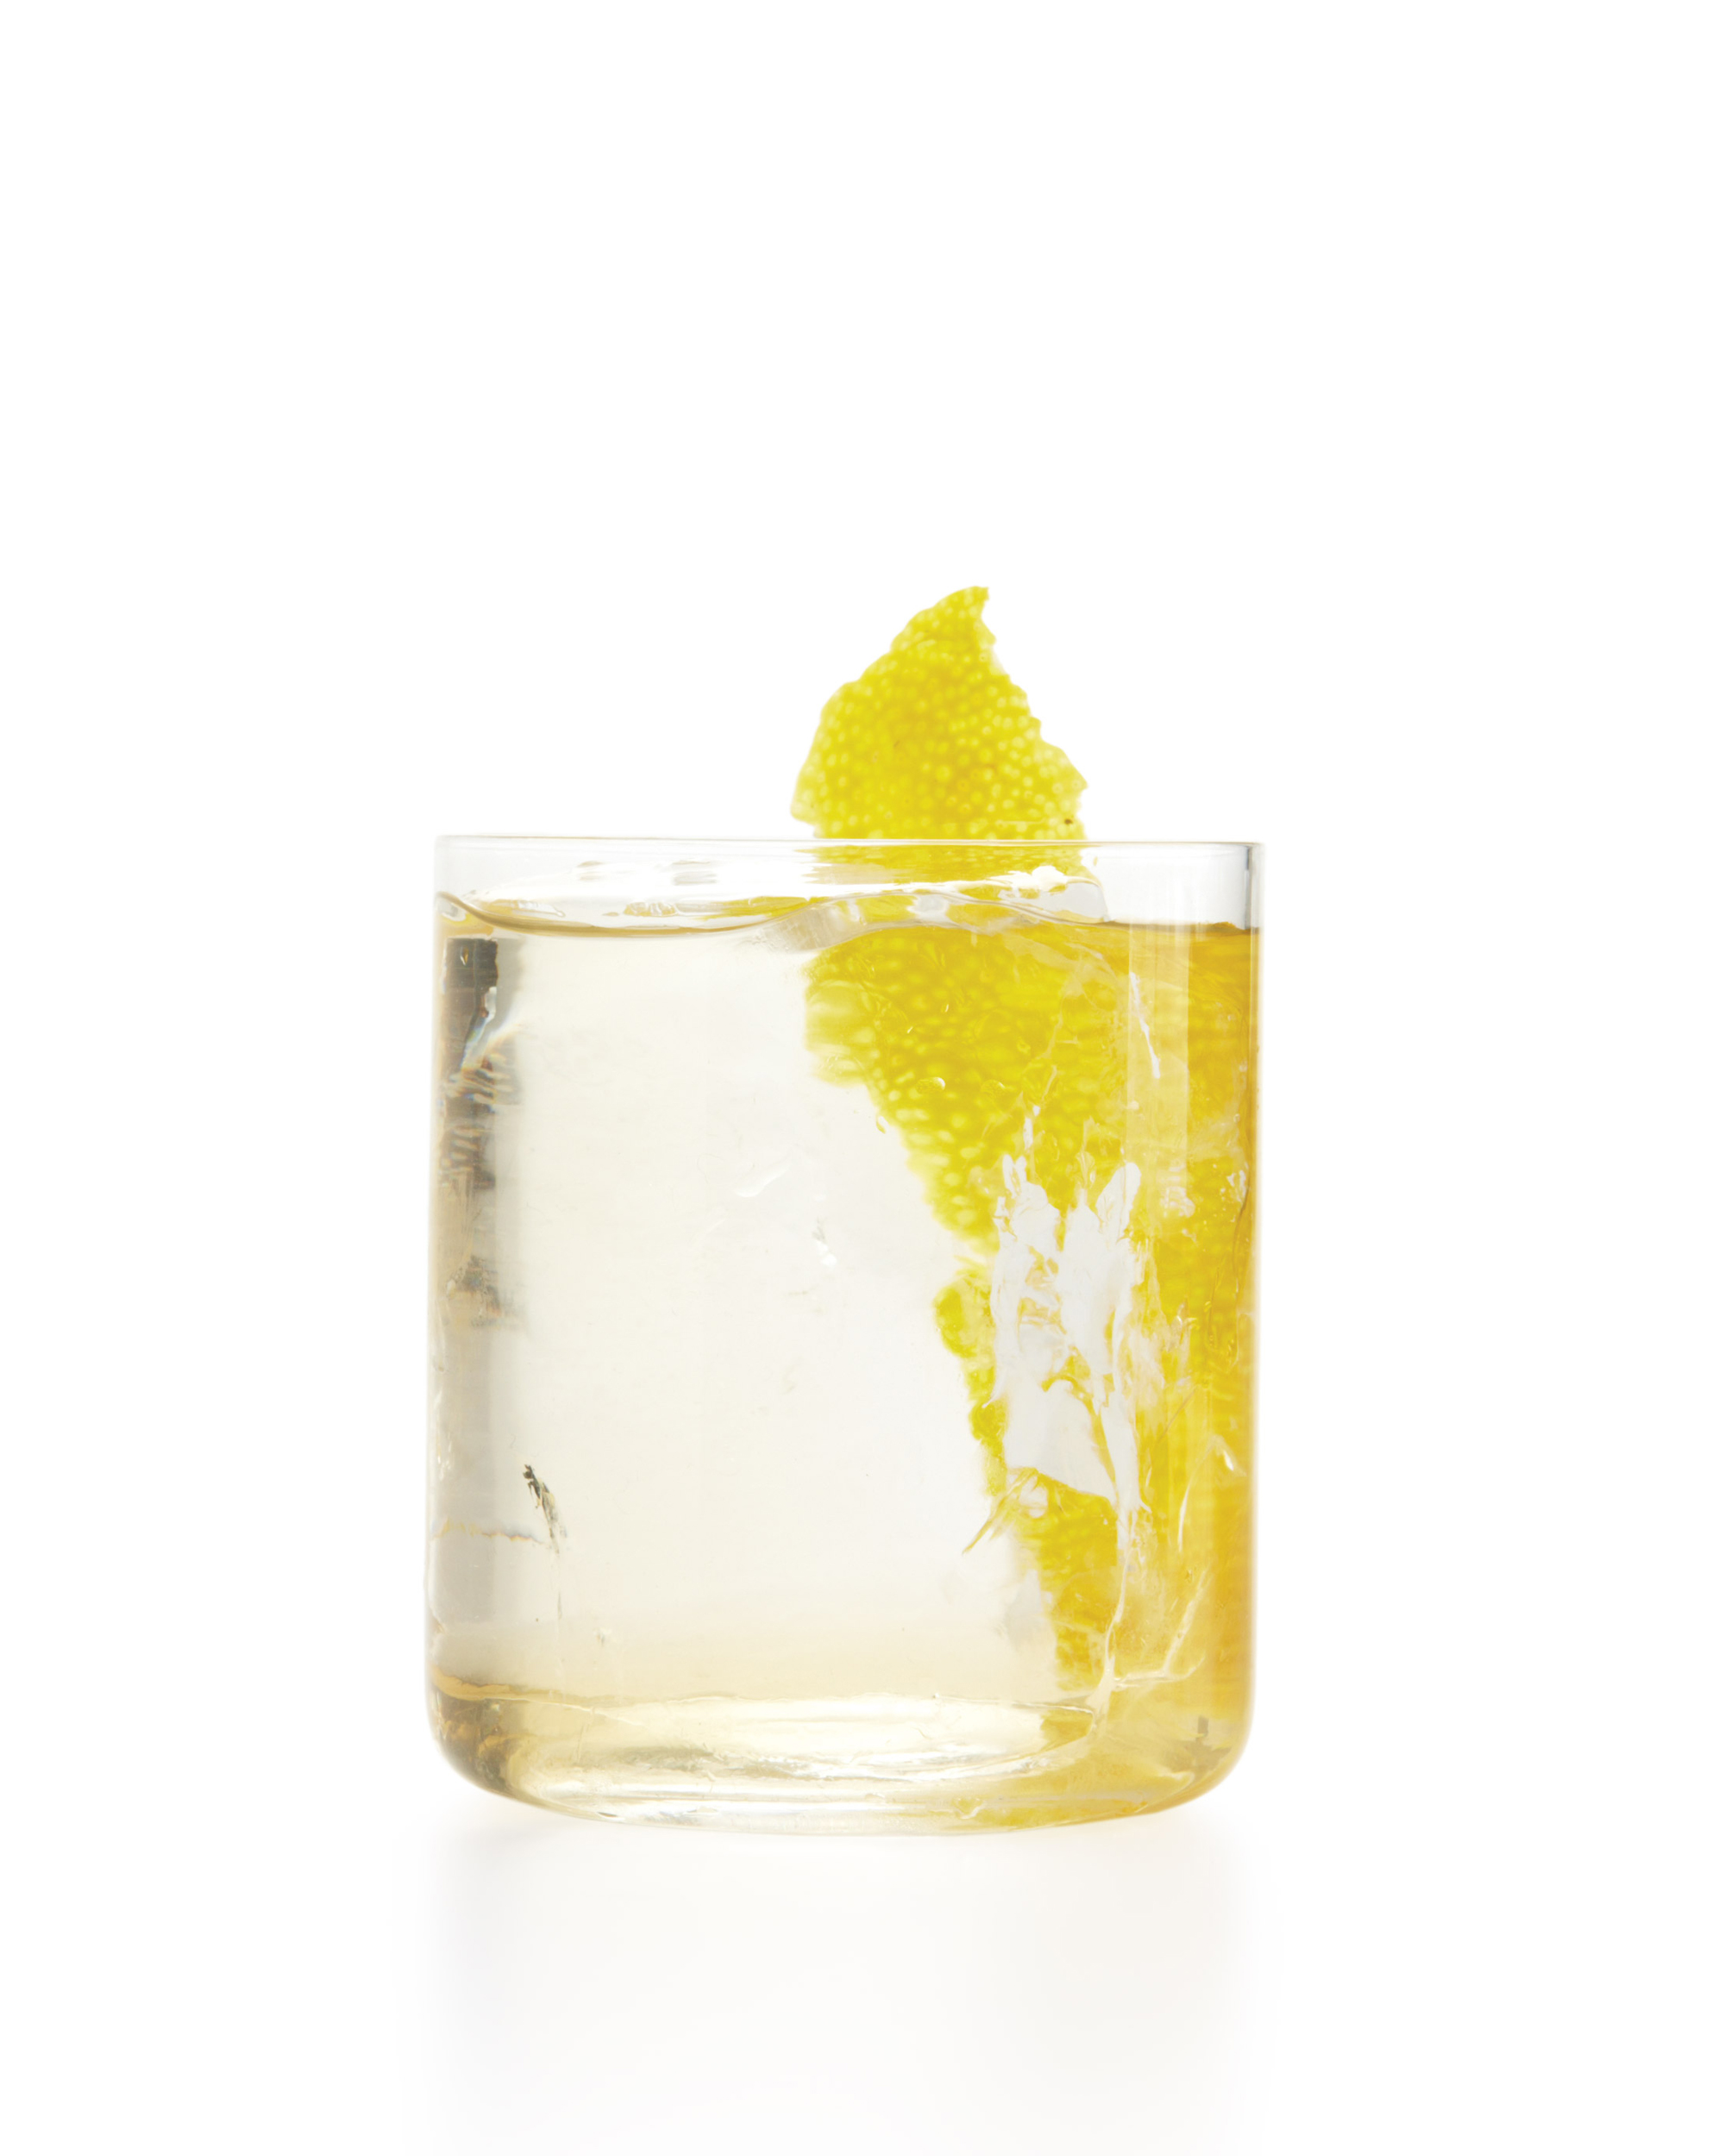 Summertime Cocktail Recipe: The Old and New